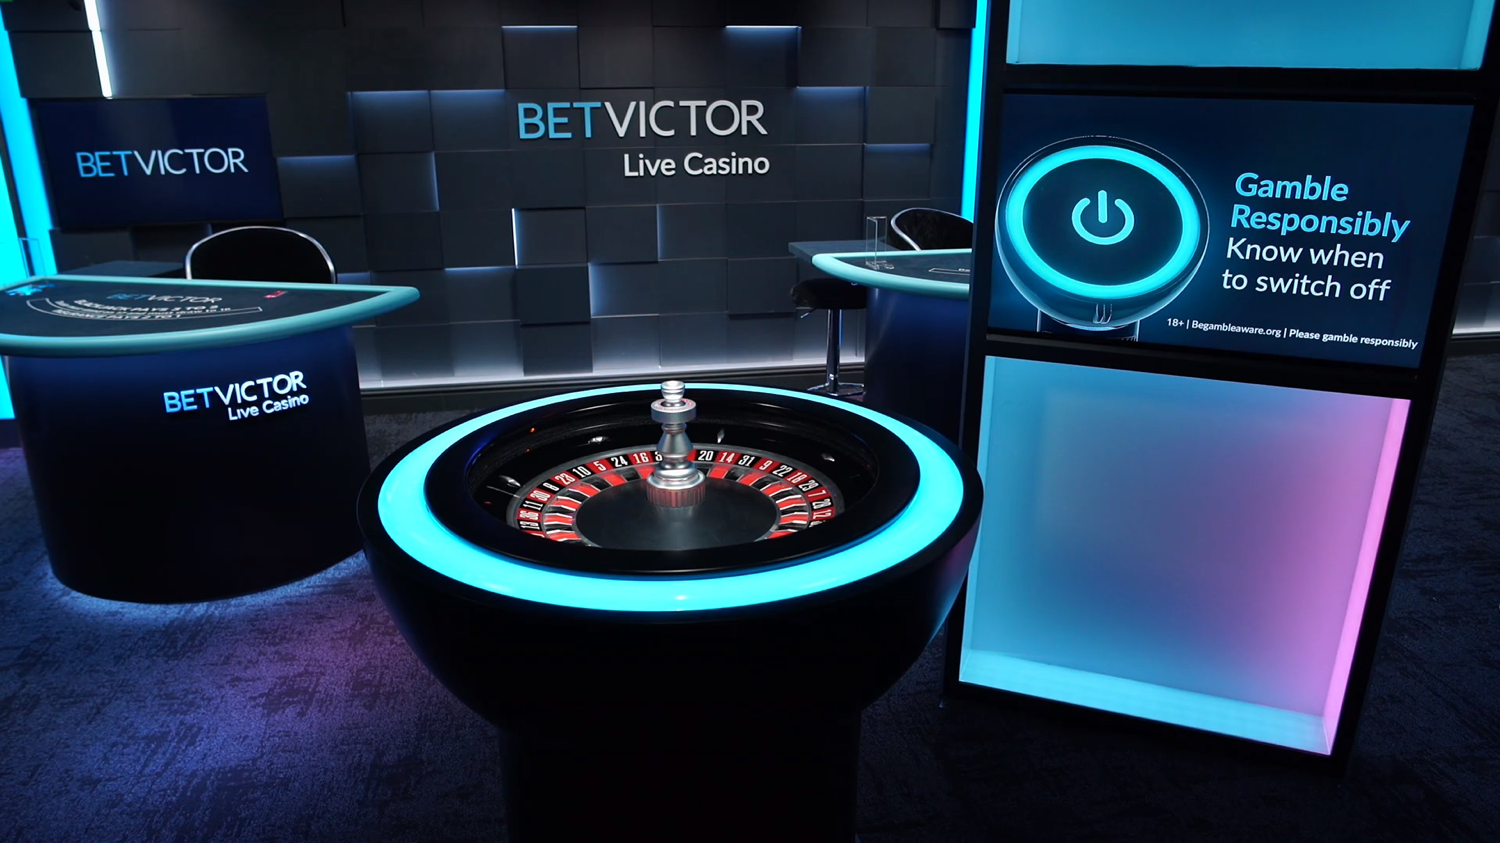 New Live Casinos